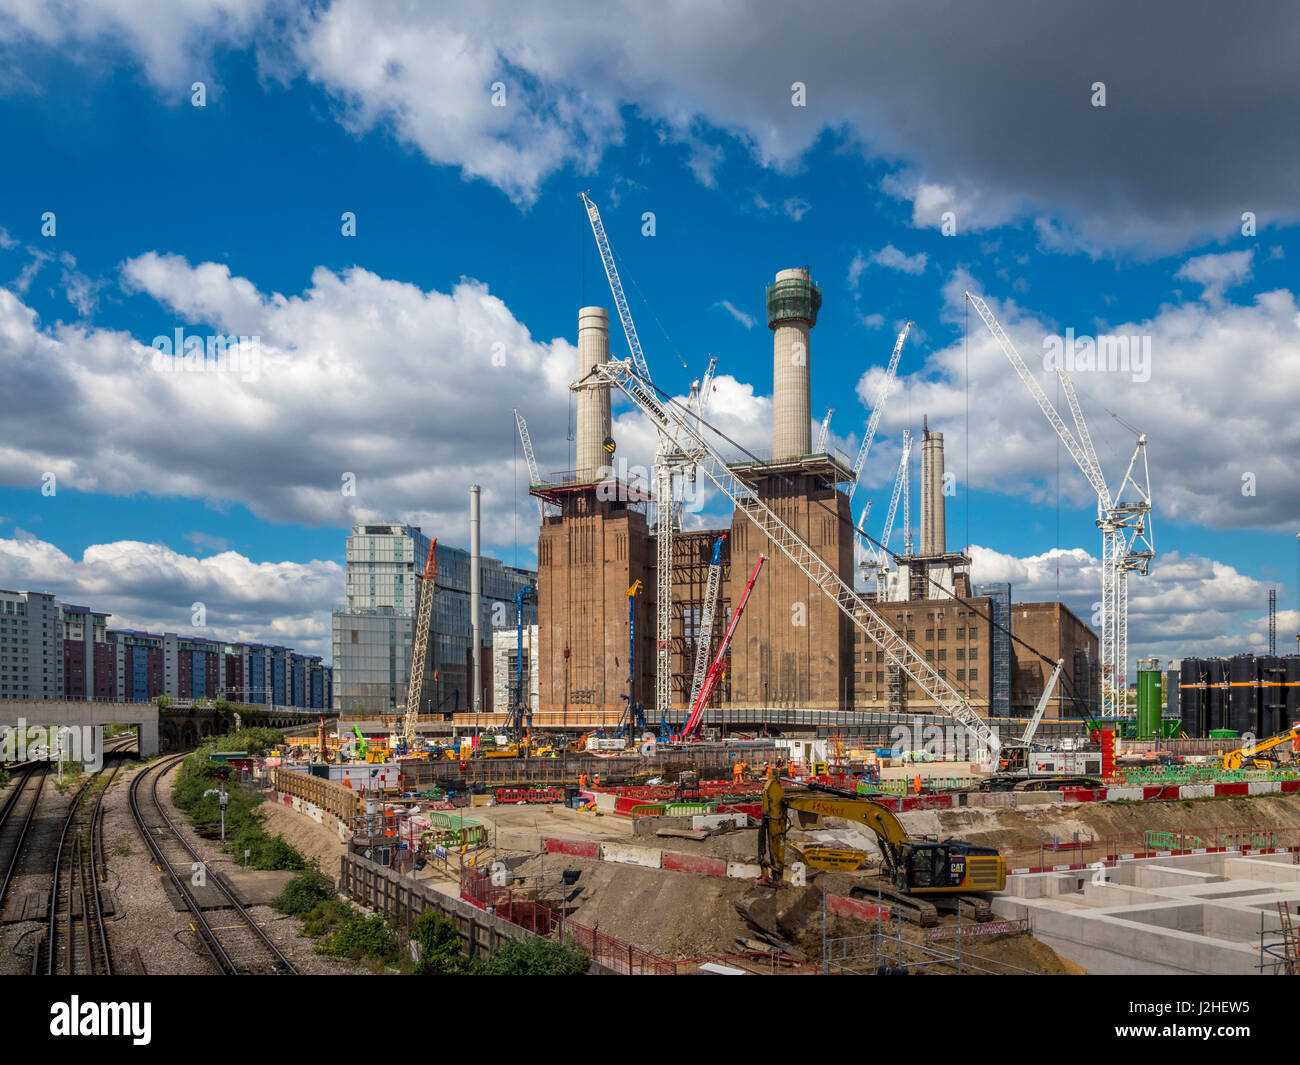 Redevelopment of Battersea Power Station and surrounding area into offices/residential use, London, UK. - Stock Image